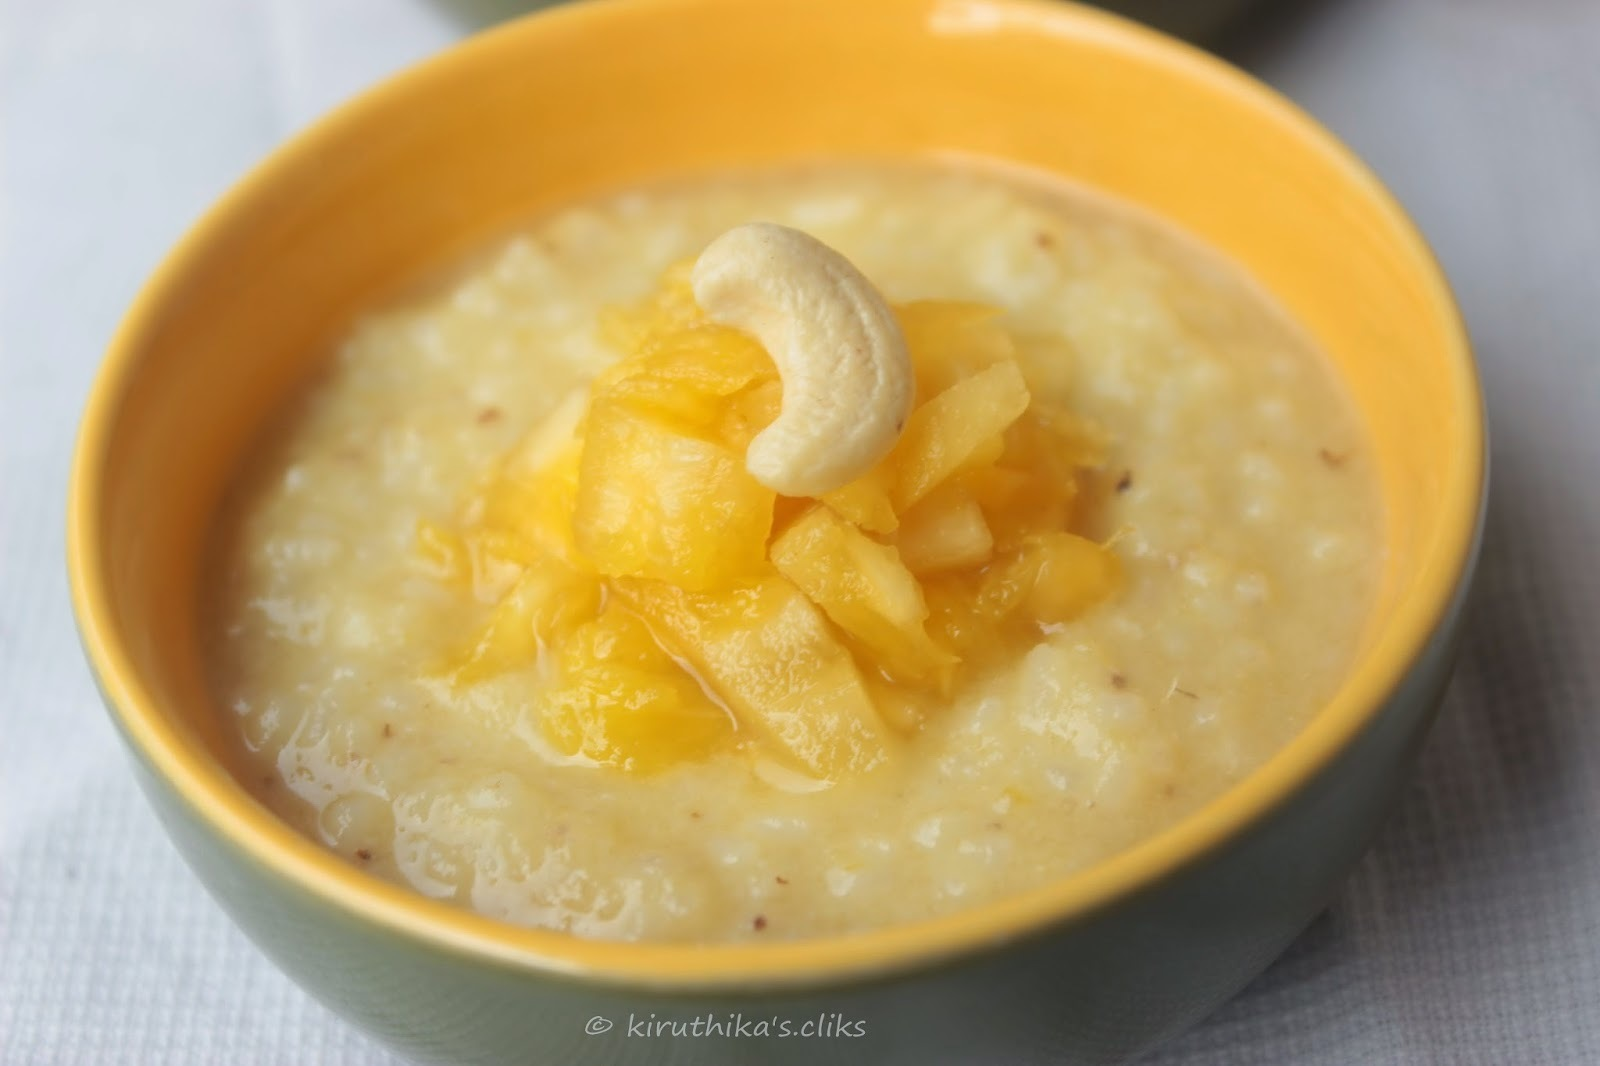 Pinapple Payasam / Pineapple Kheer